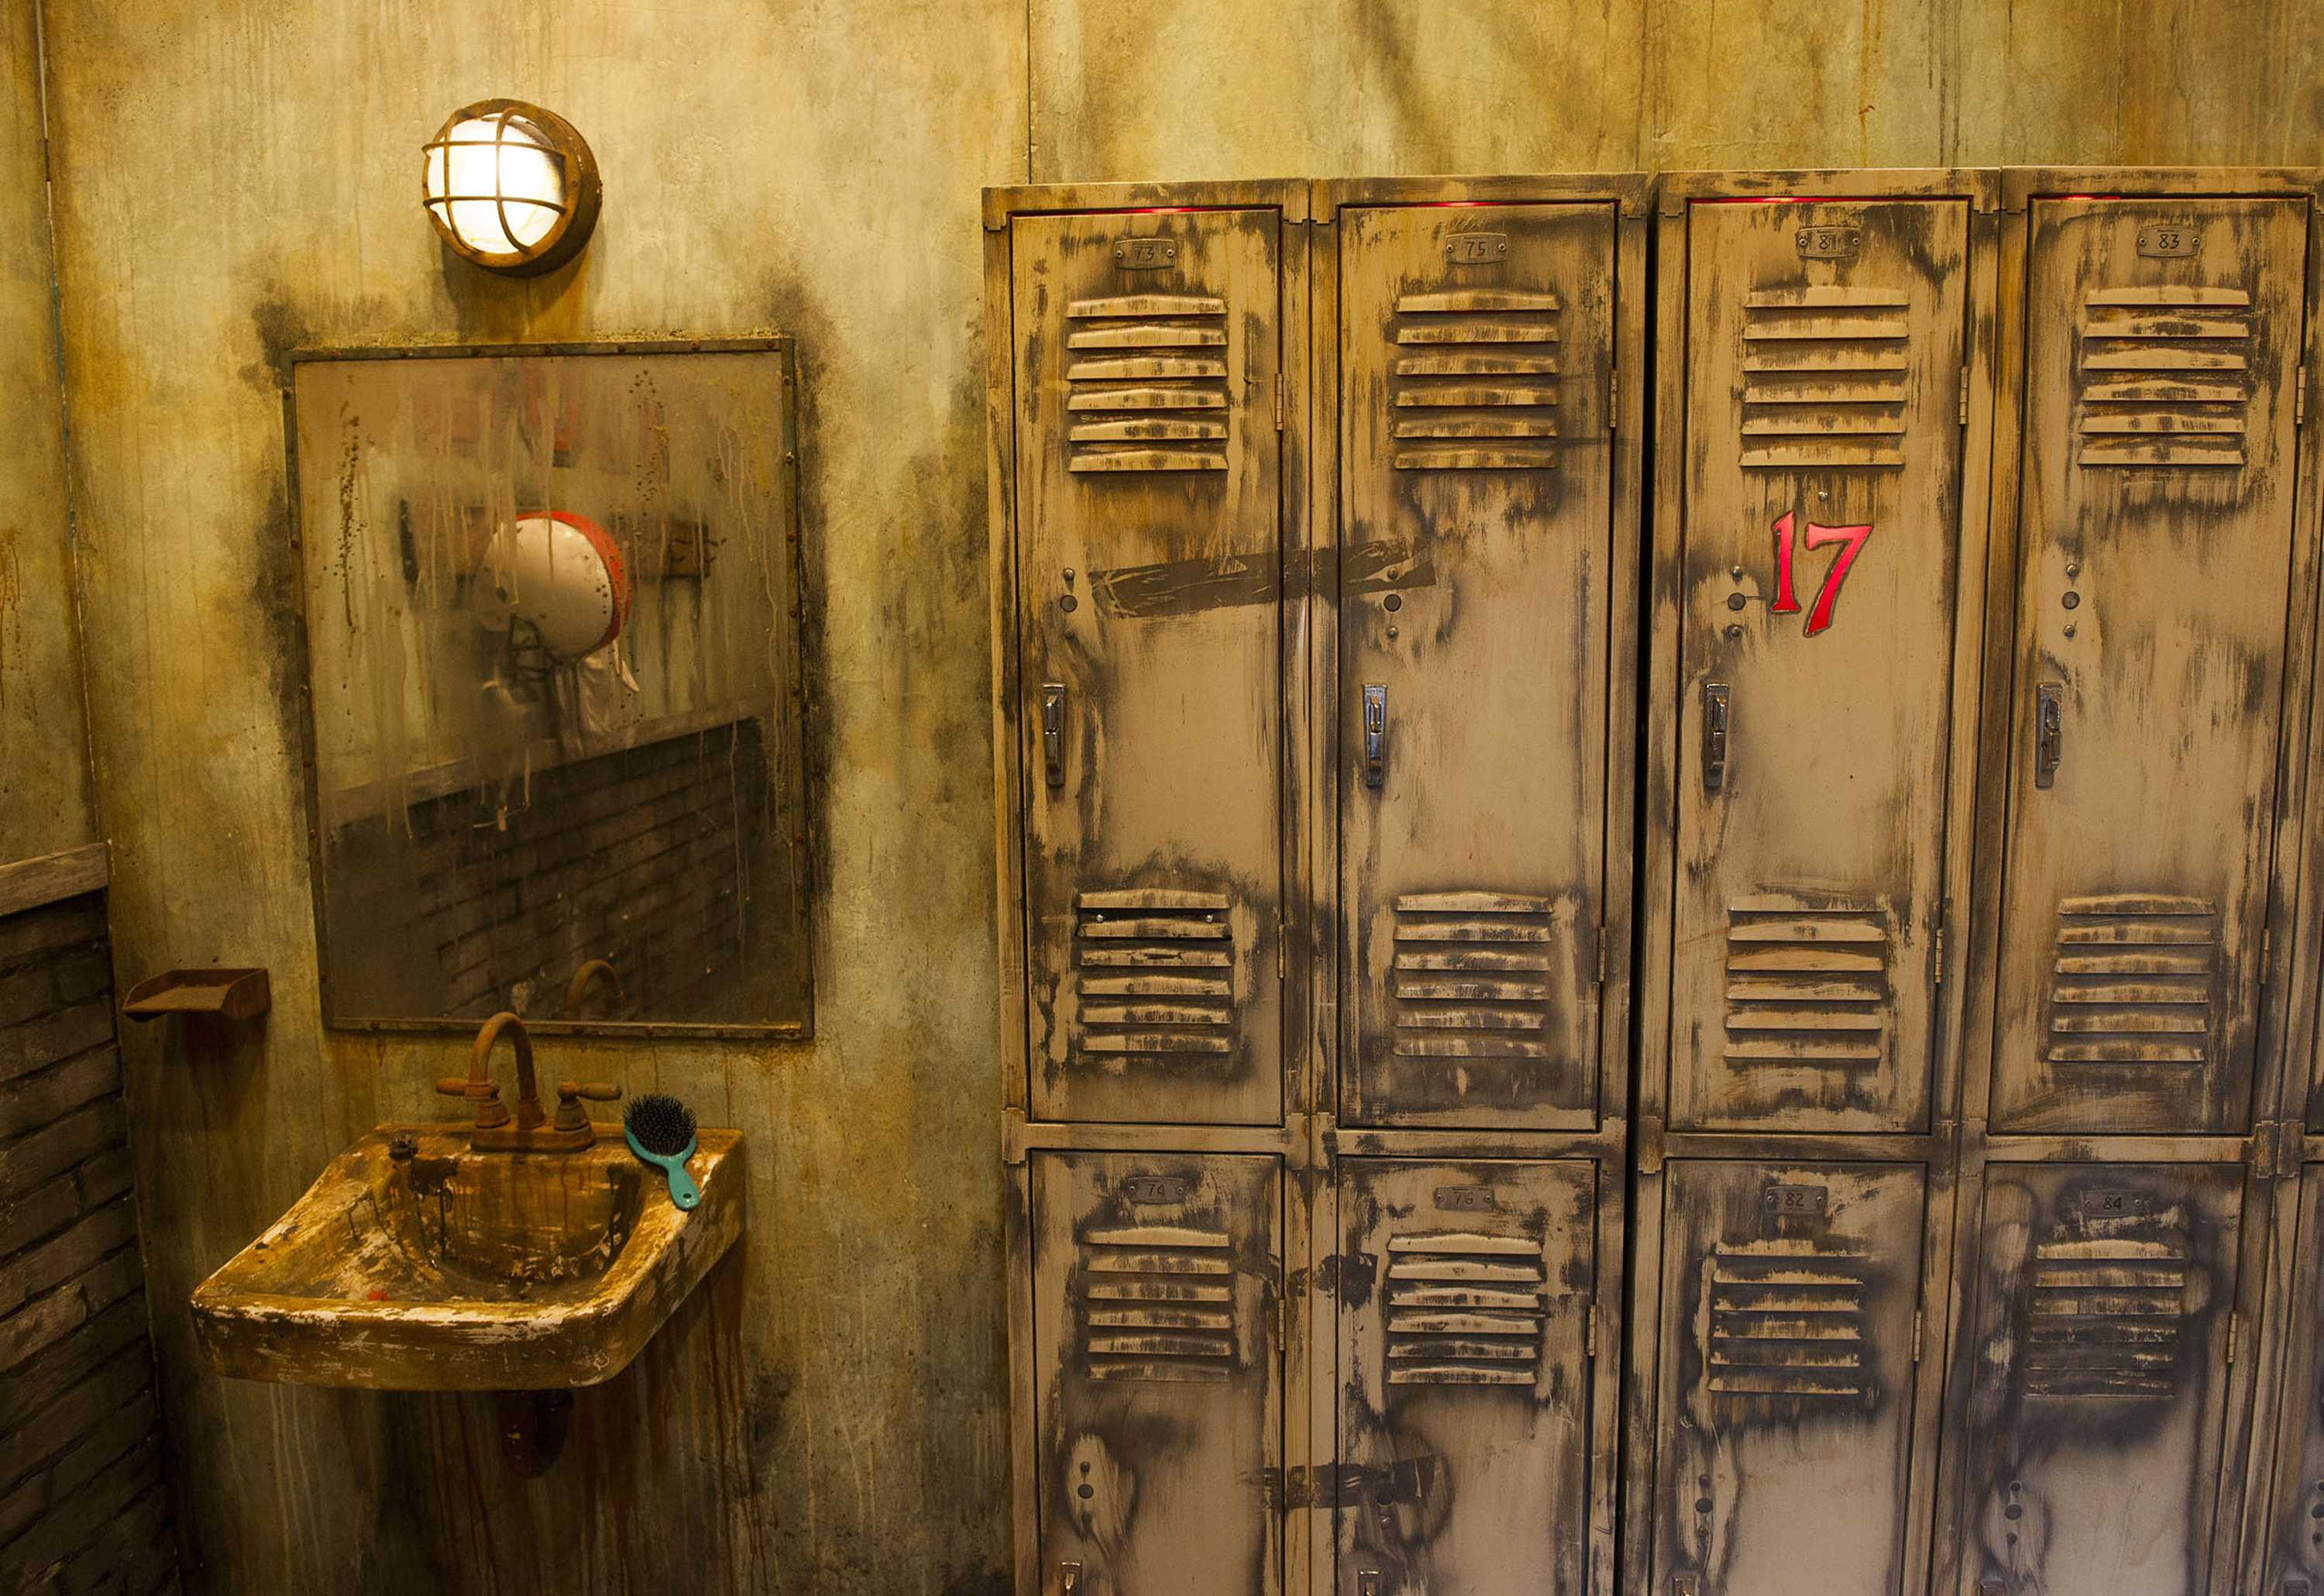 Inside of haunted house looks incredibly dirty with a muddy bathroom and some lockers that show a red number 17